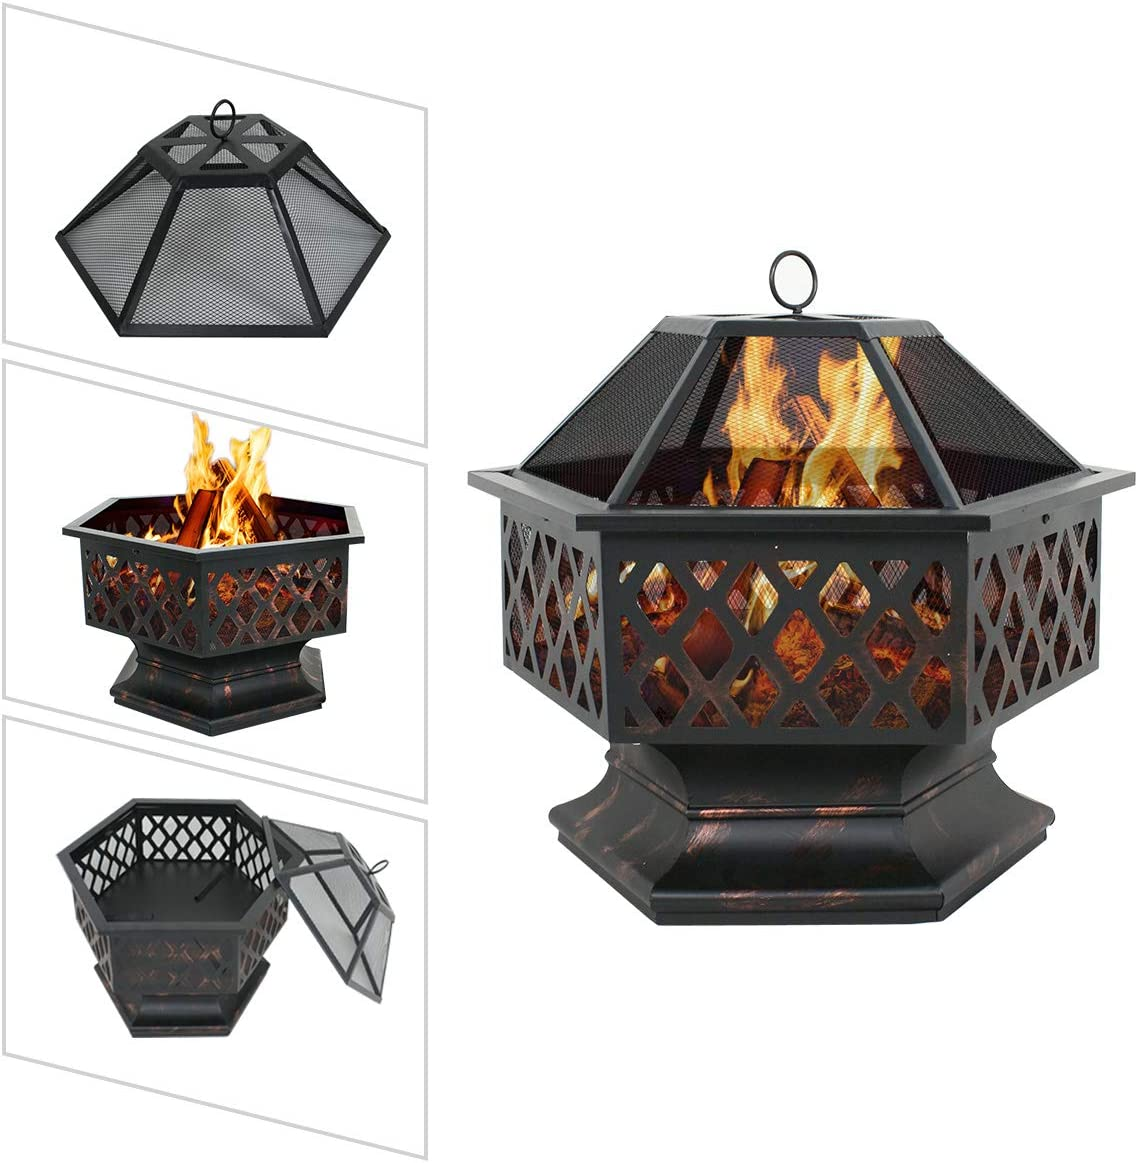 LEMY Hex Shaped Fire Pit Wood Burning Fireplace Firepit Bowl with Spark Screen Cover Patio Backyard Heater Steel 24